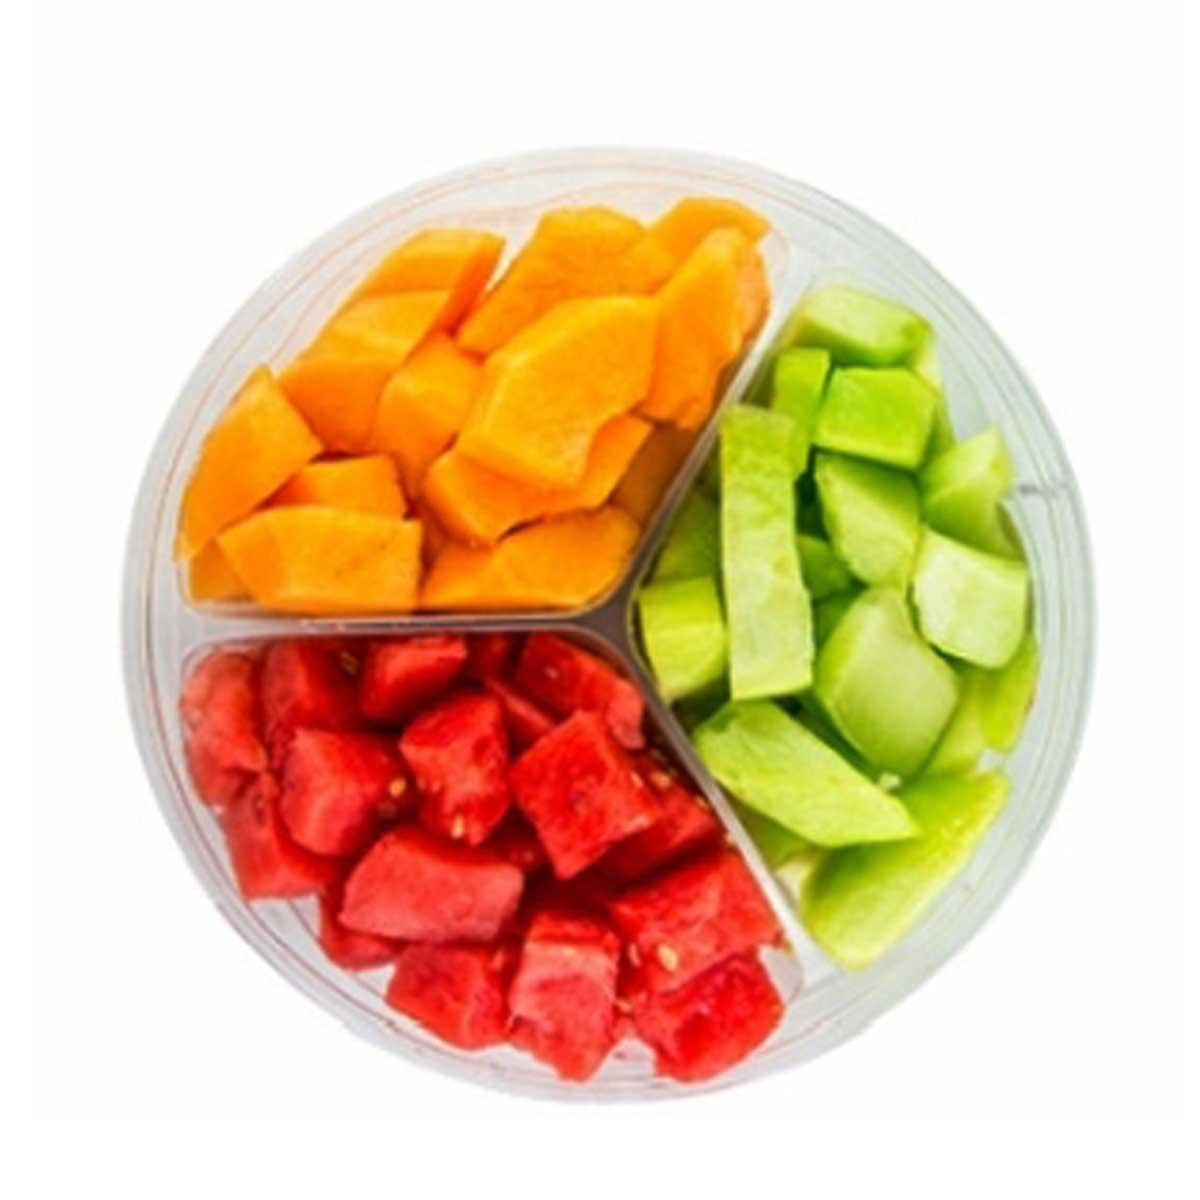 Cut mixed fruit